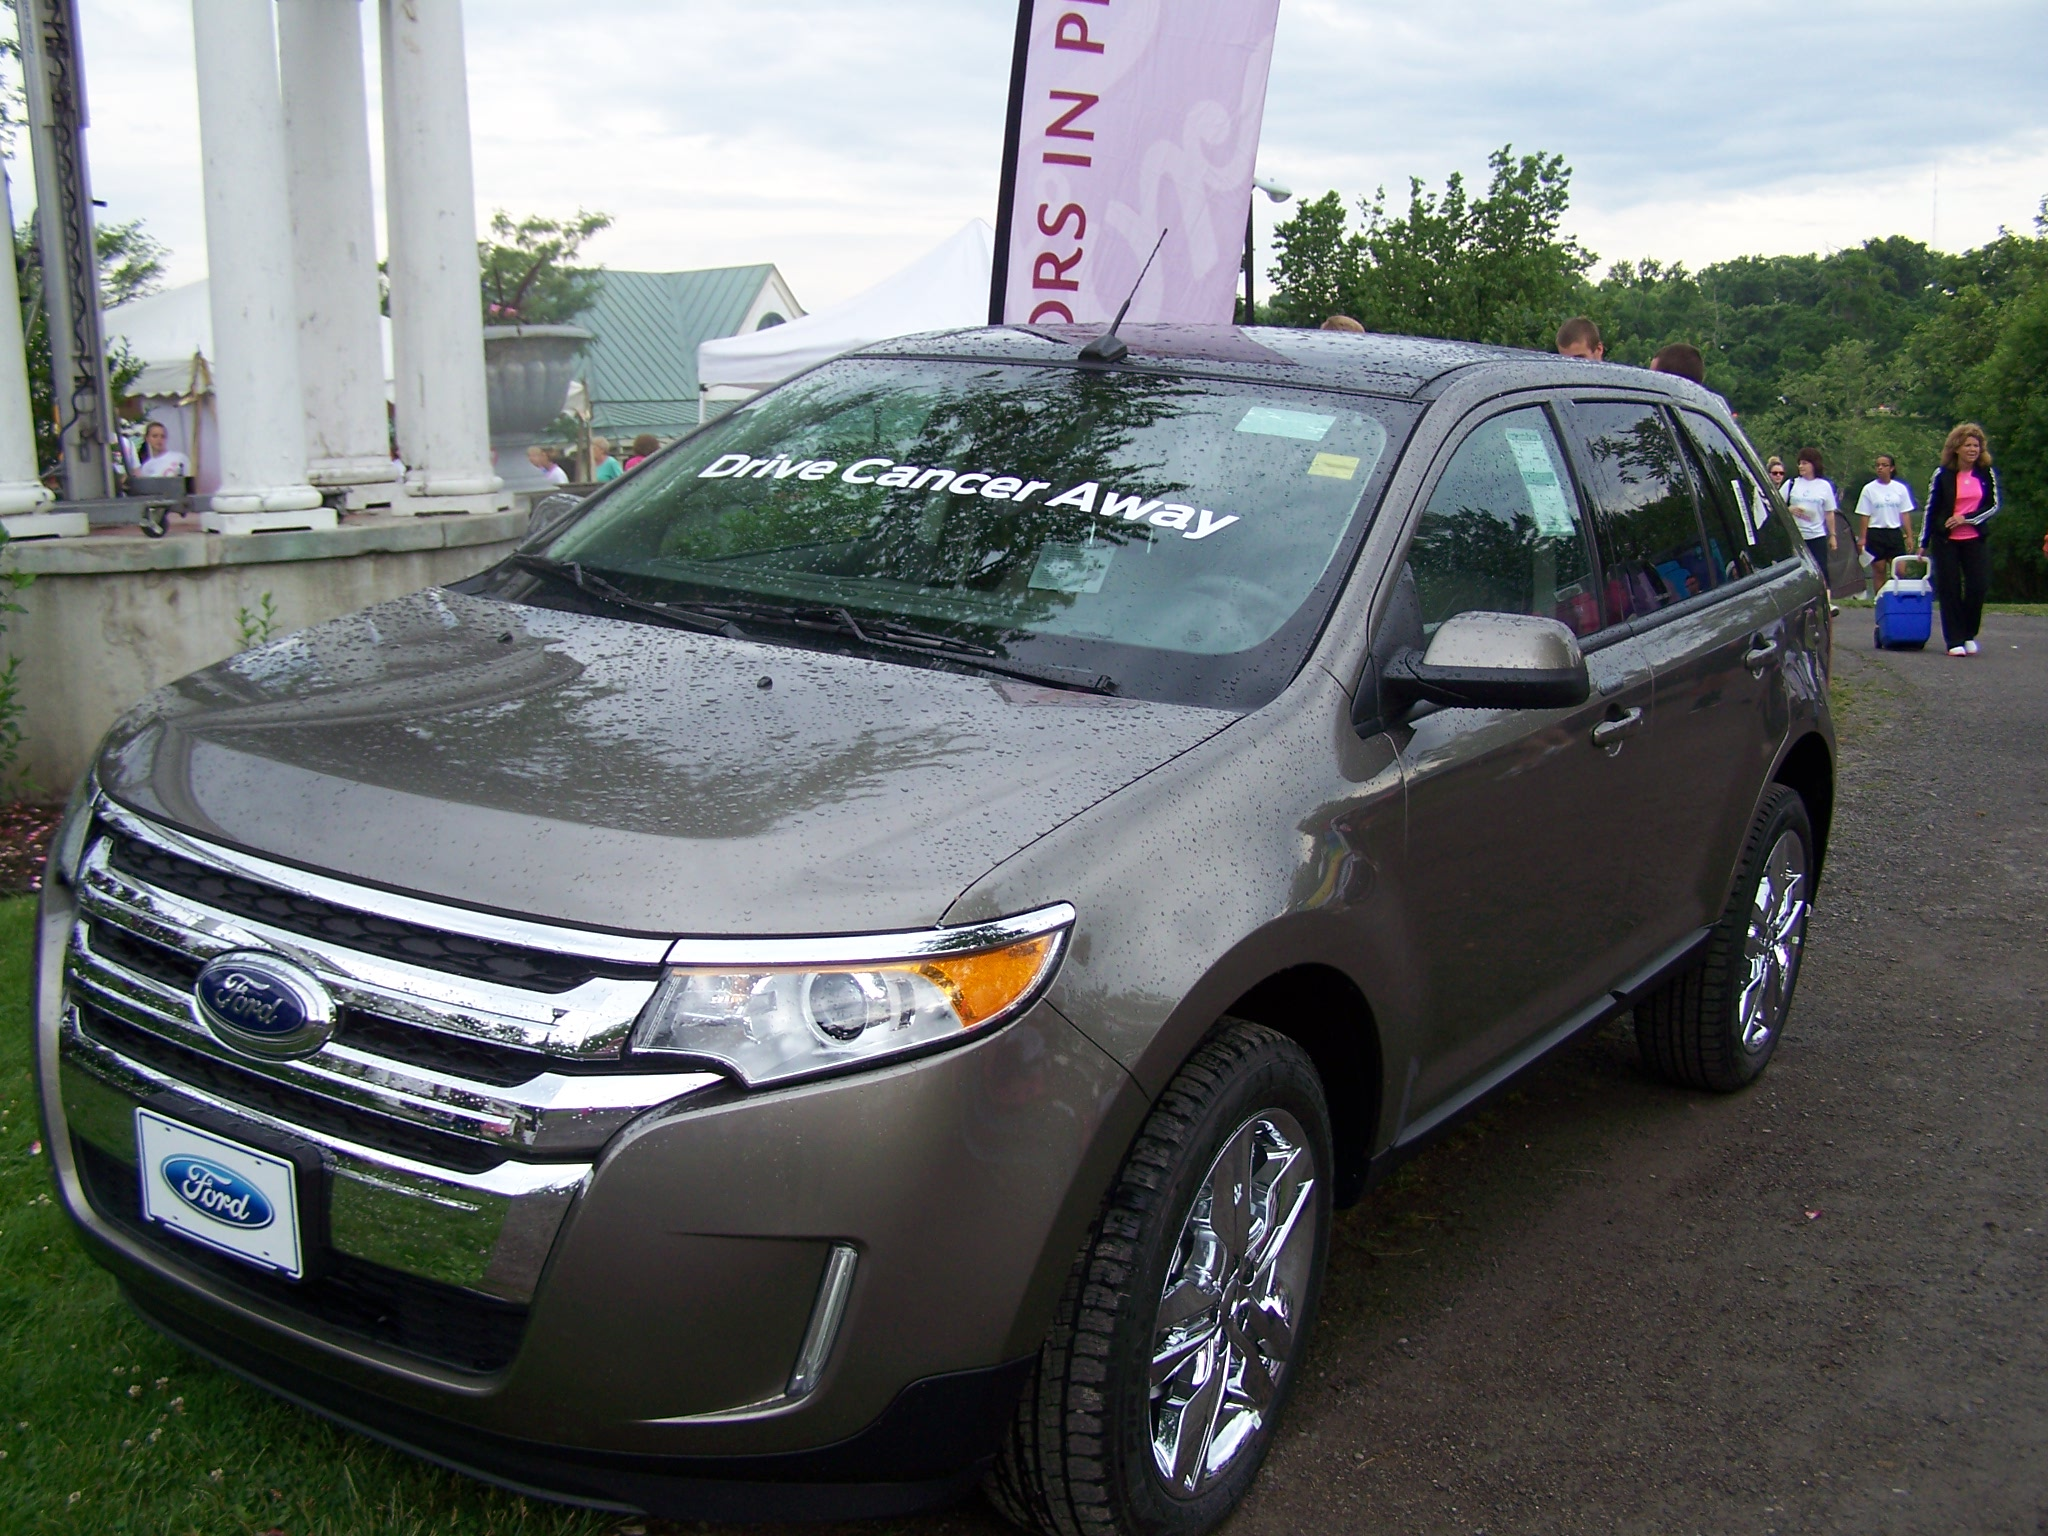 A Ford Edge was parked at the WNY Race for the Cure site - complete with an inspirational message.